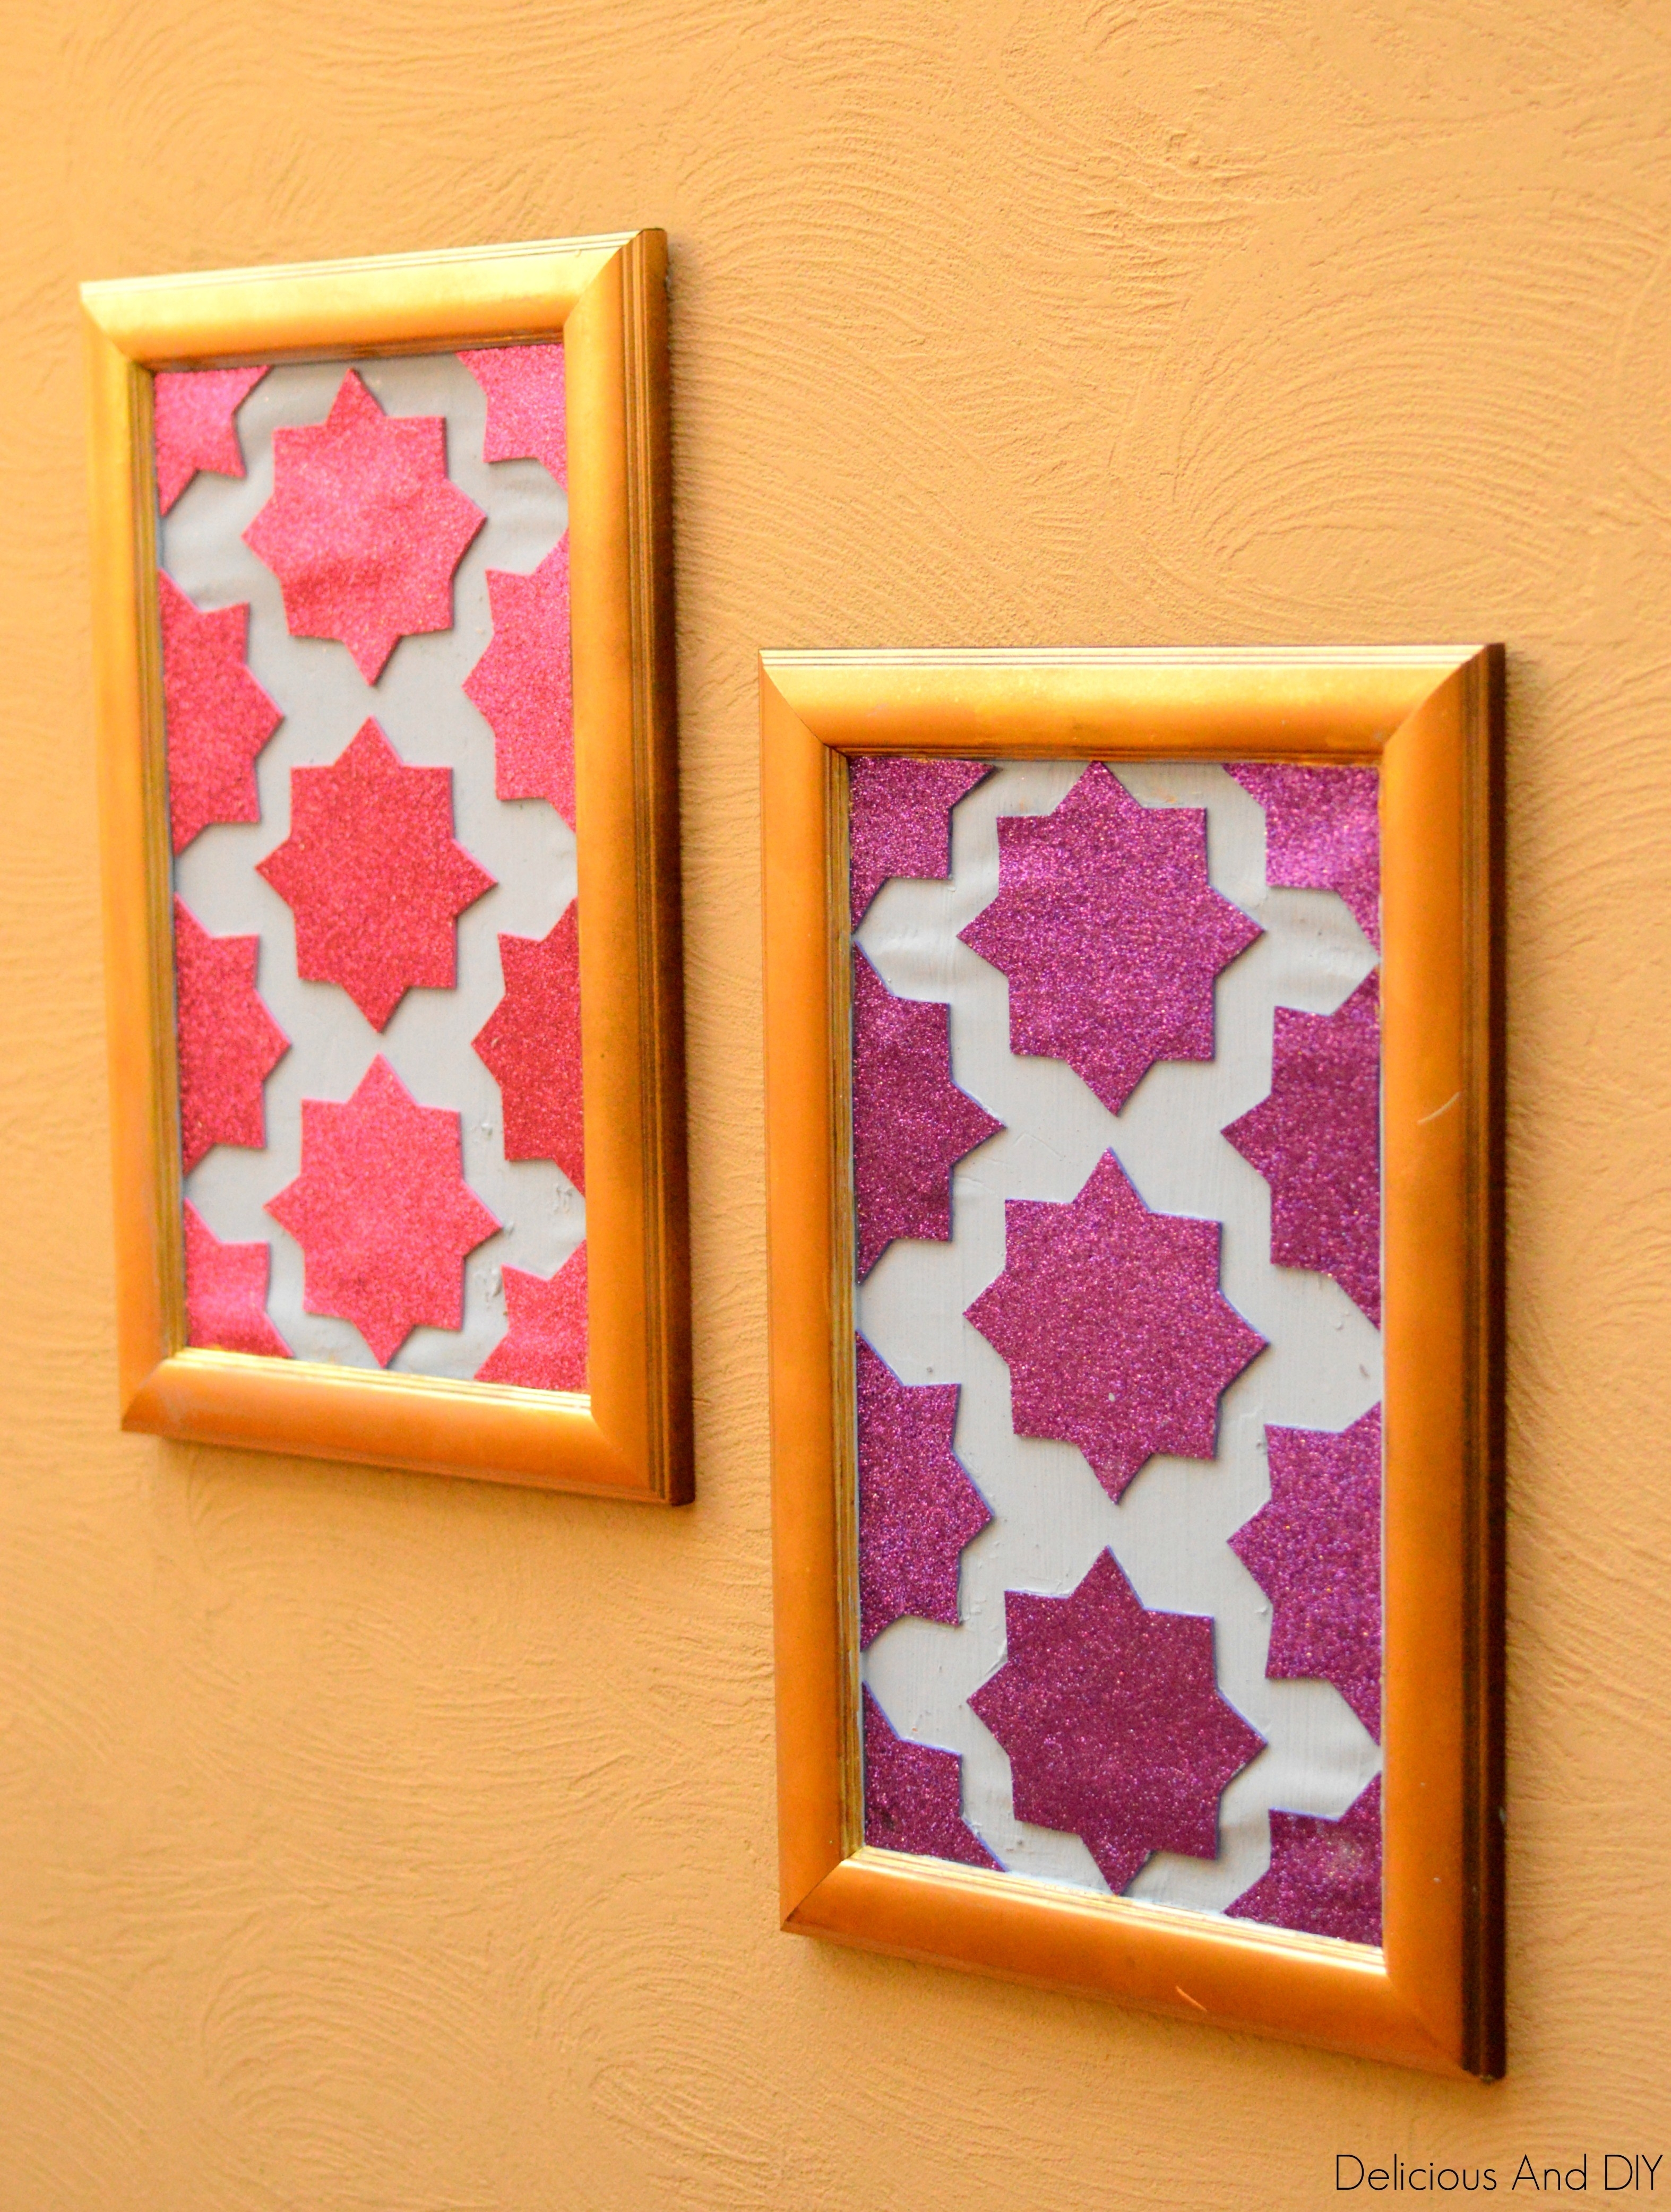 Diy Moroccan Wall Art – Delicious And Diy Intended For Best And Newest Moroccan Wall Art (View 14 of 20)